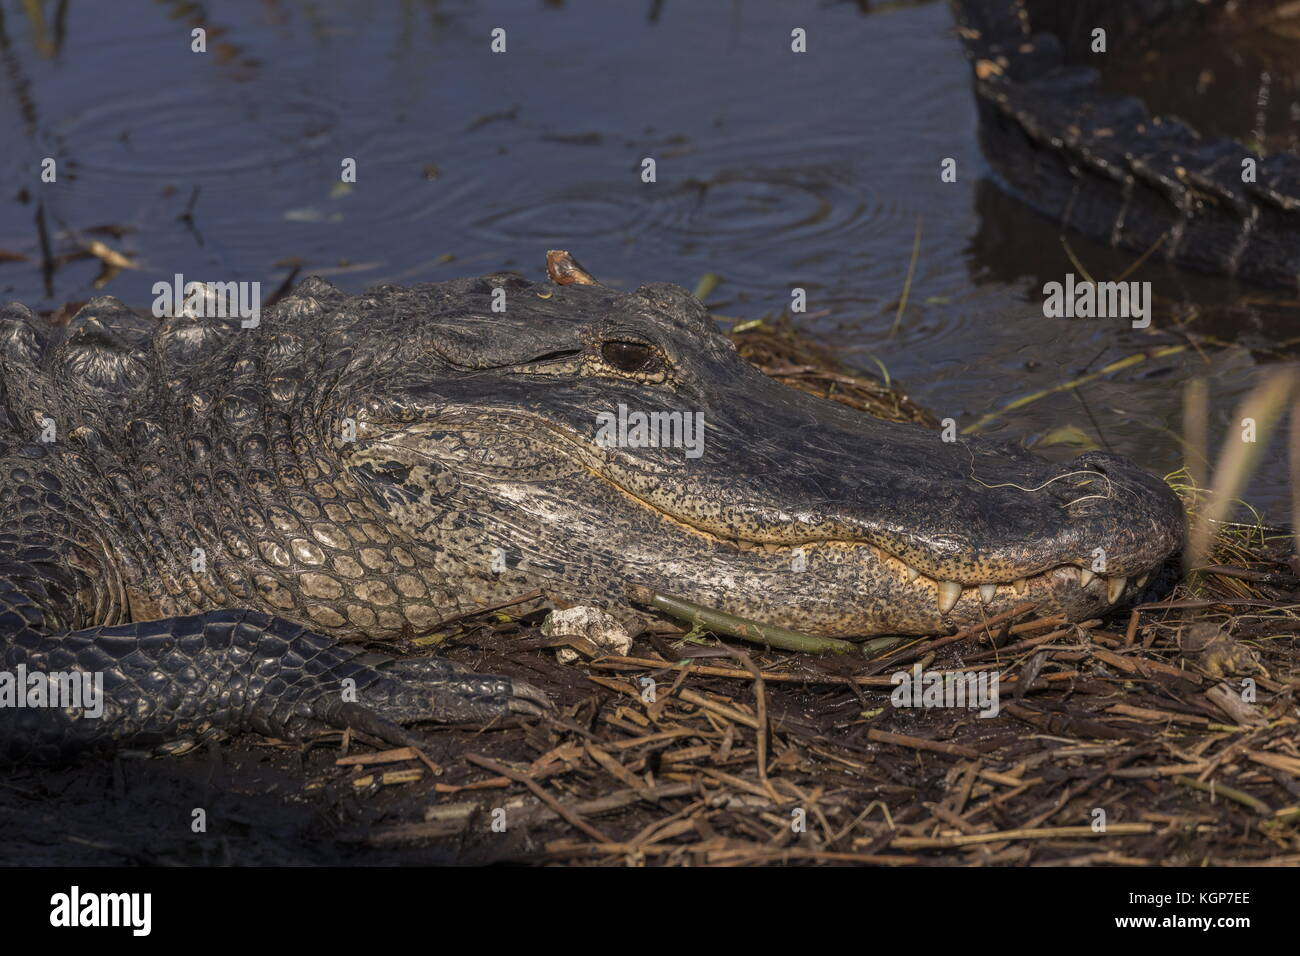 American alligator, Alligator mississippiensis, basking in the sun, Everglades, Florida. - Stock Image